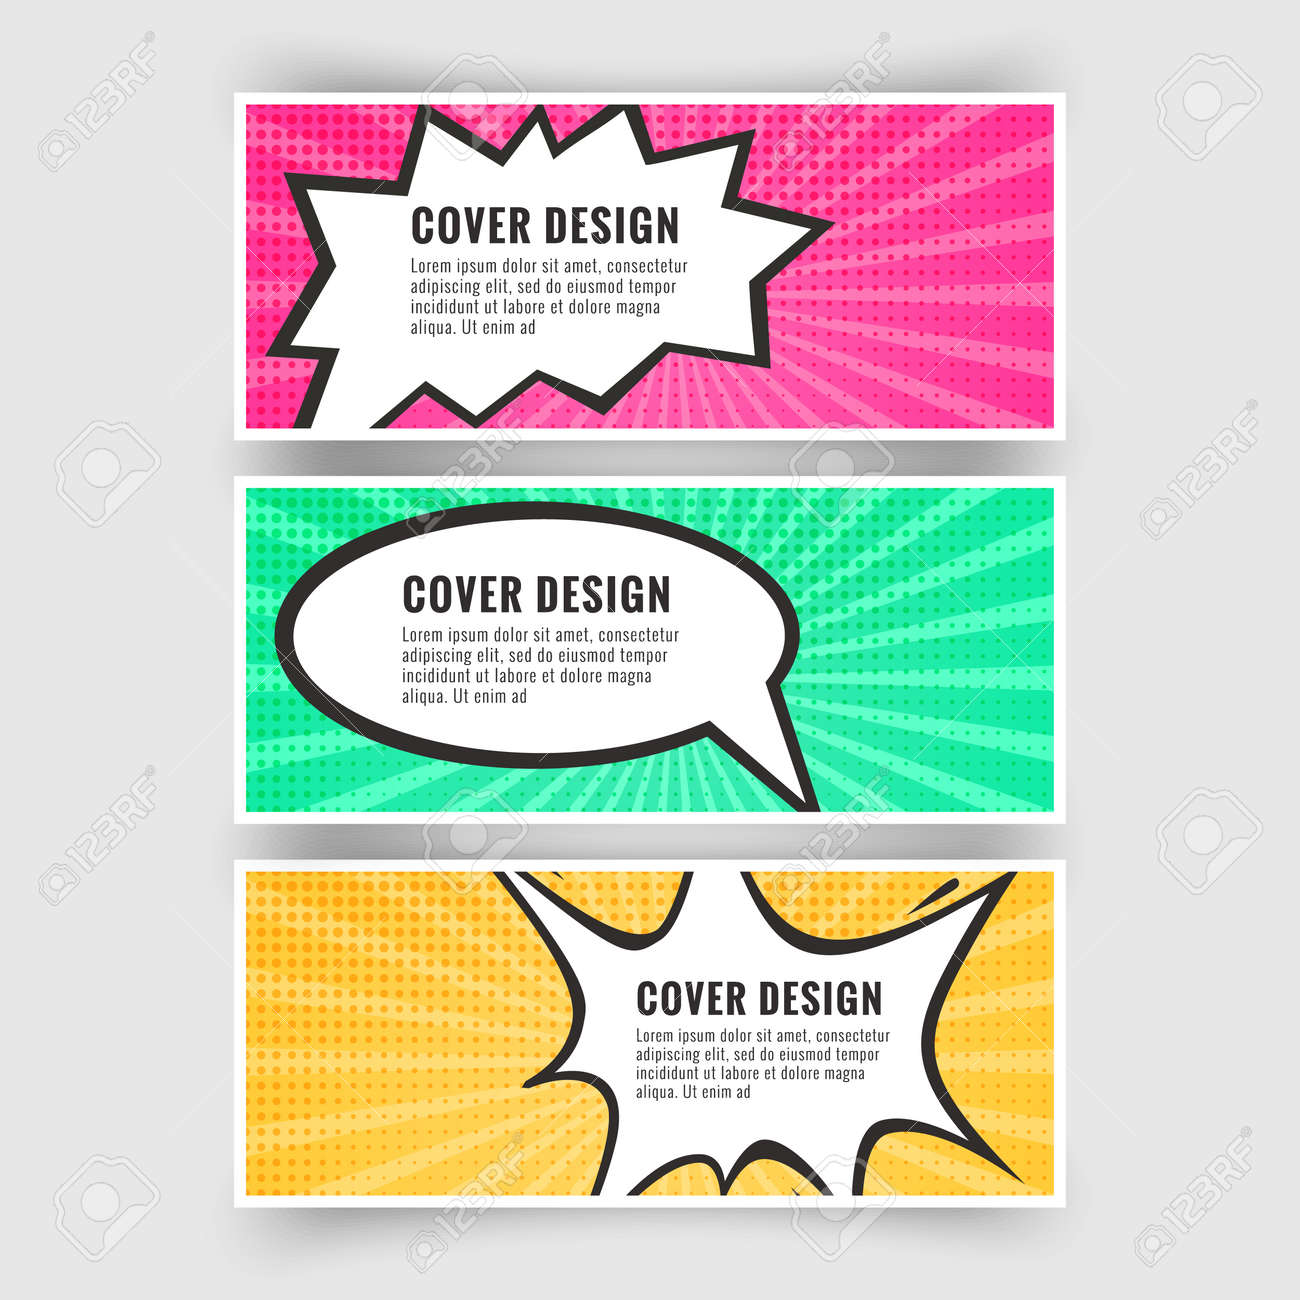 Set of banners in the style of pop art or comics, card collection, Vector illustration - 171608014